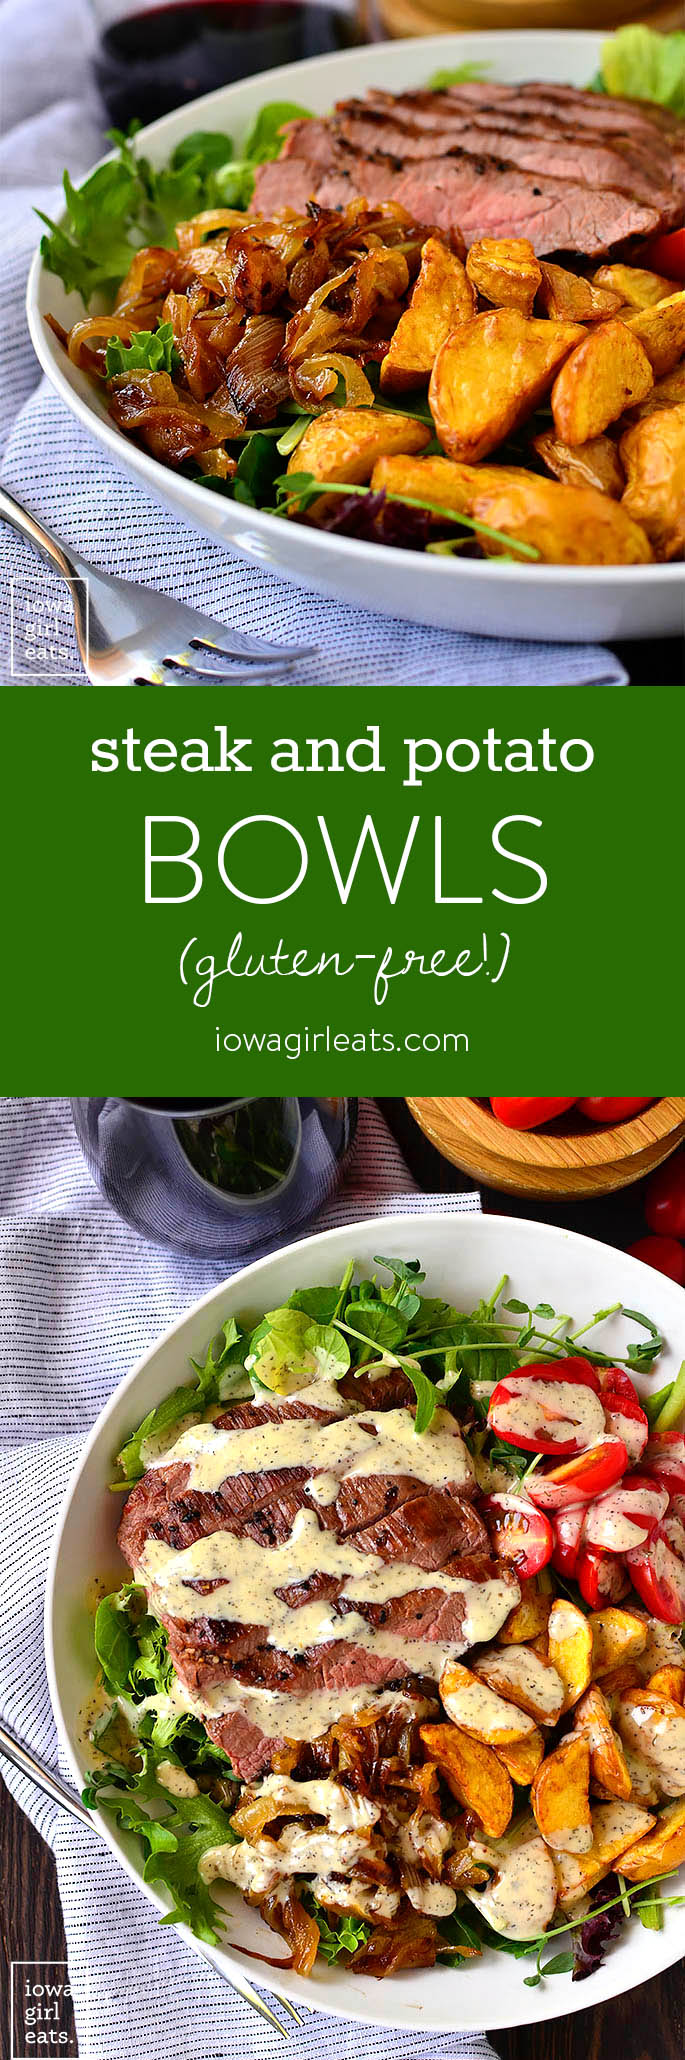 Steak And Potato Bowls Are A Healthy Hearty Grilled Gluten Free Dinner Recipe